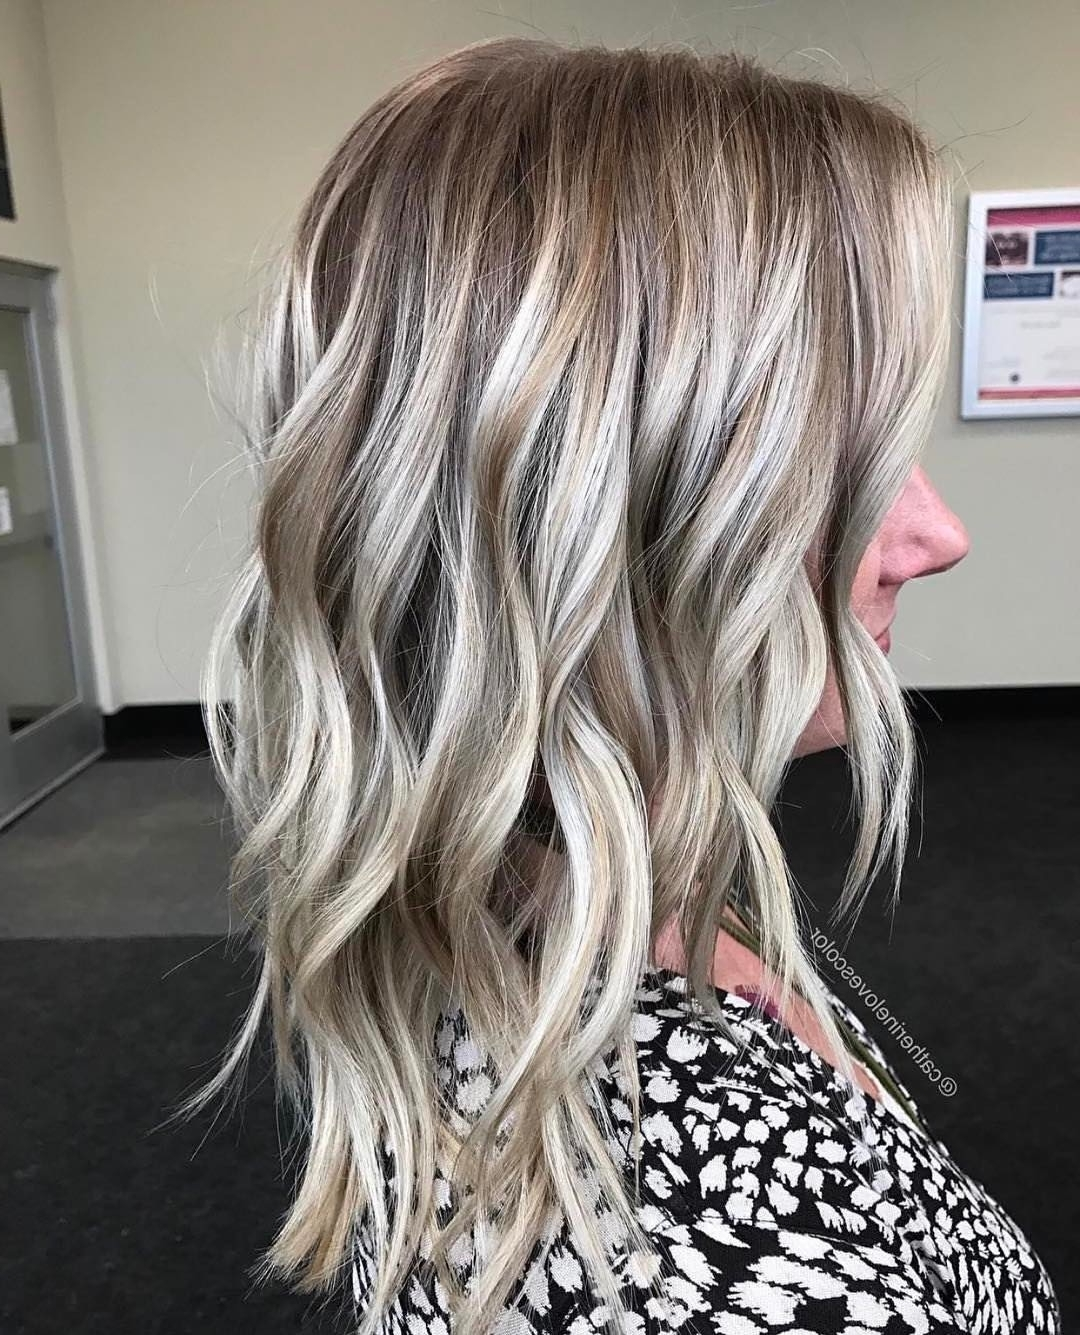 20 Adorable Ash Blonde Hairstyles To Try: Hair Color Ideas 2018 Pertaining To Current Dark Blonde Hairstyles With Icy Streaks (View 1 of 20)